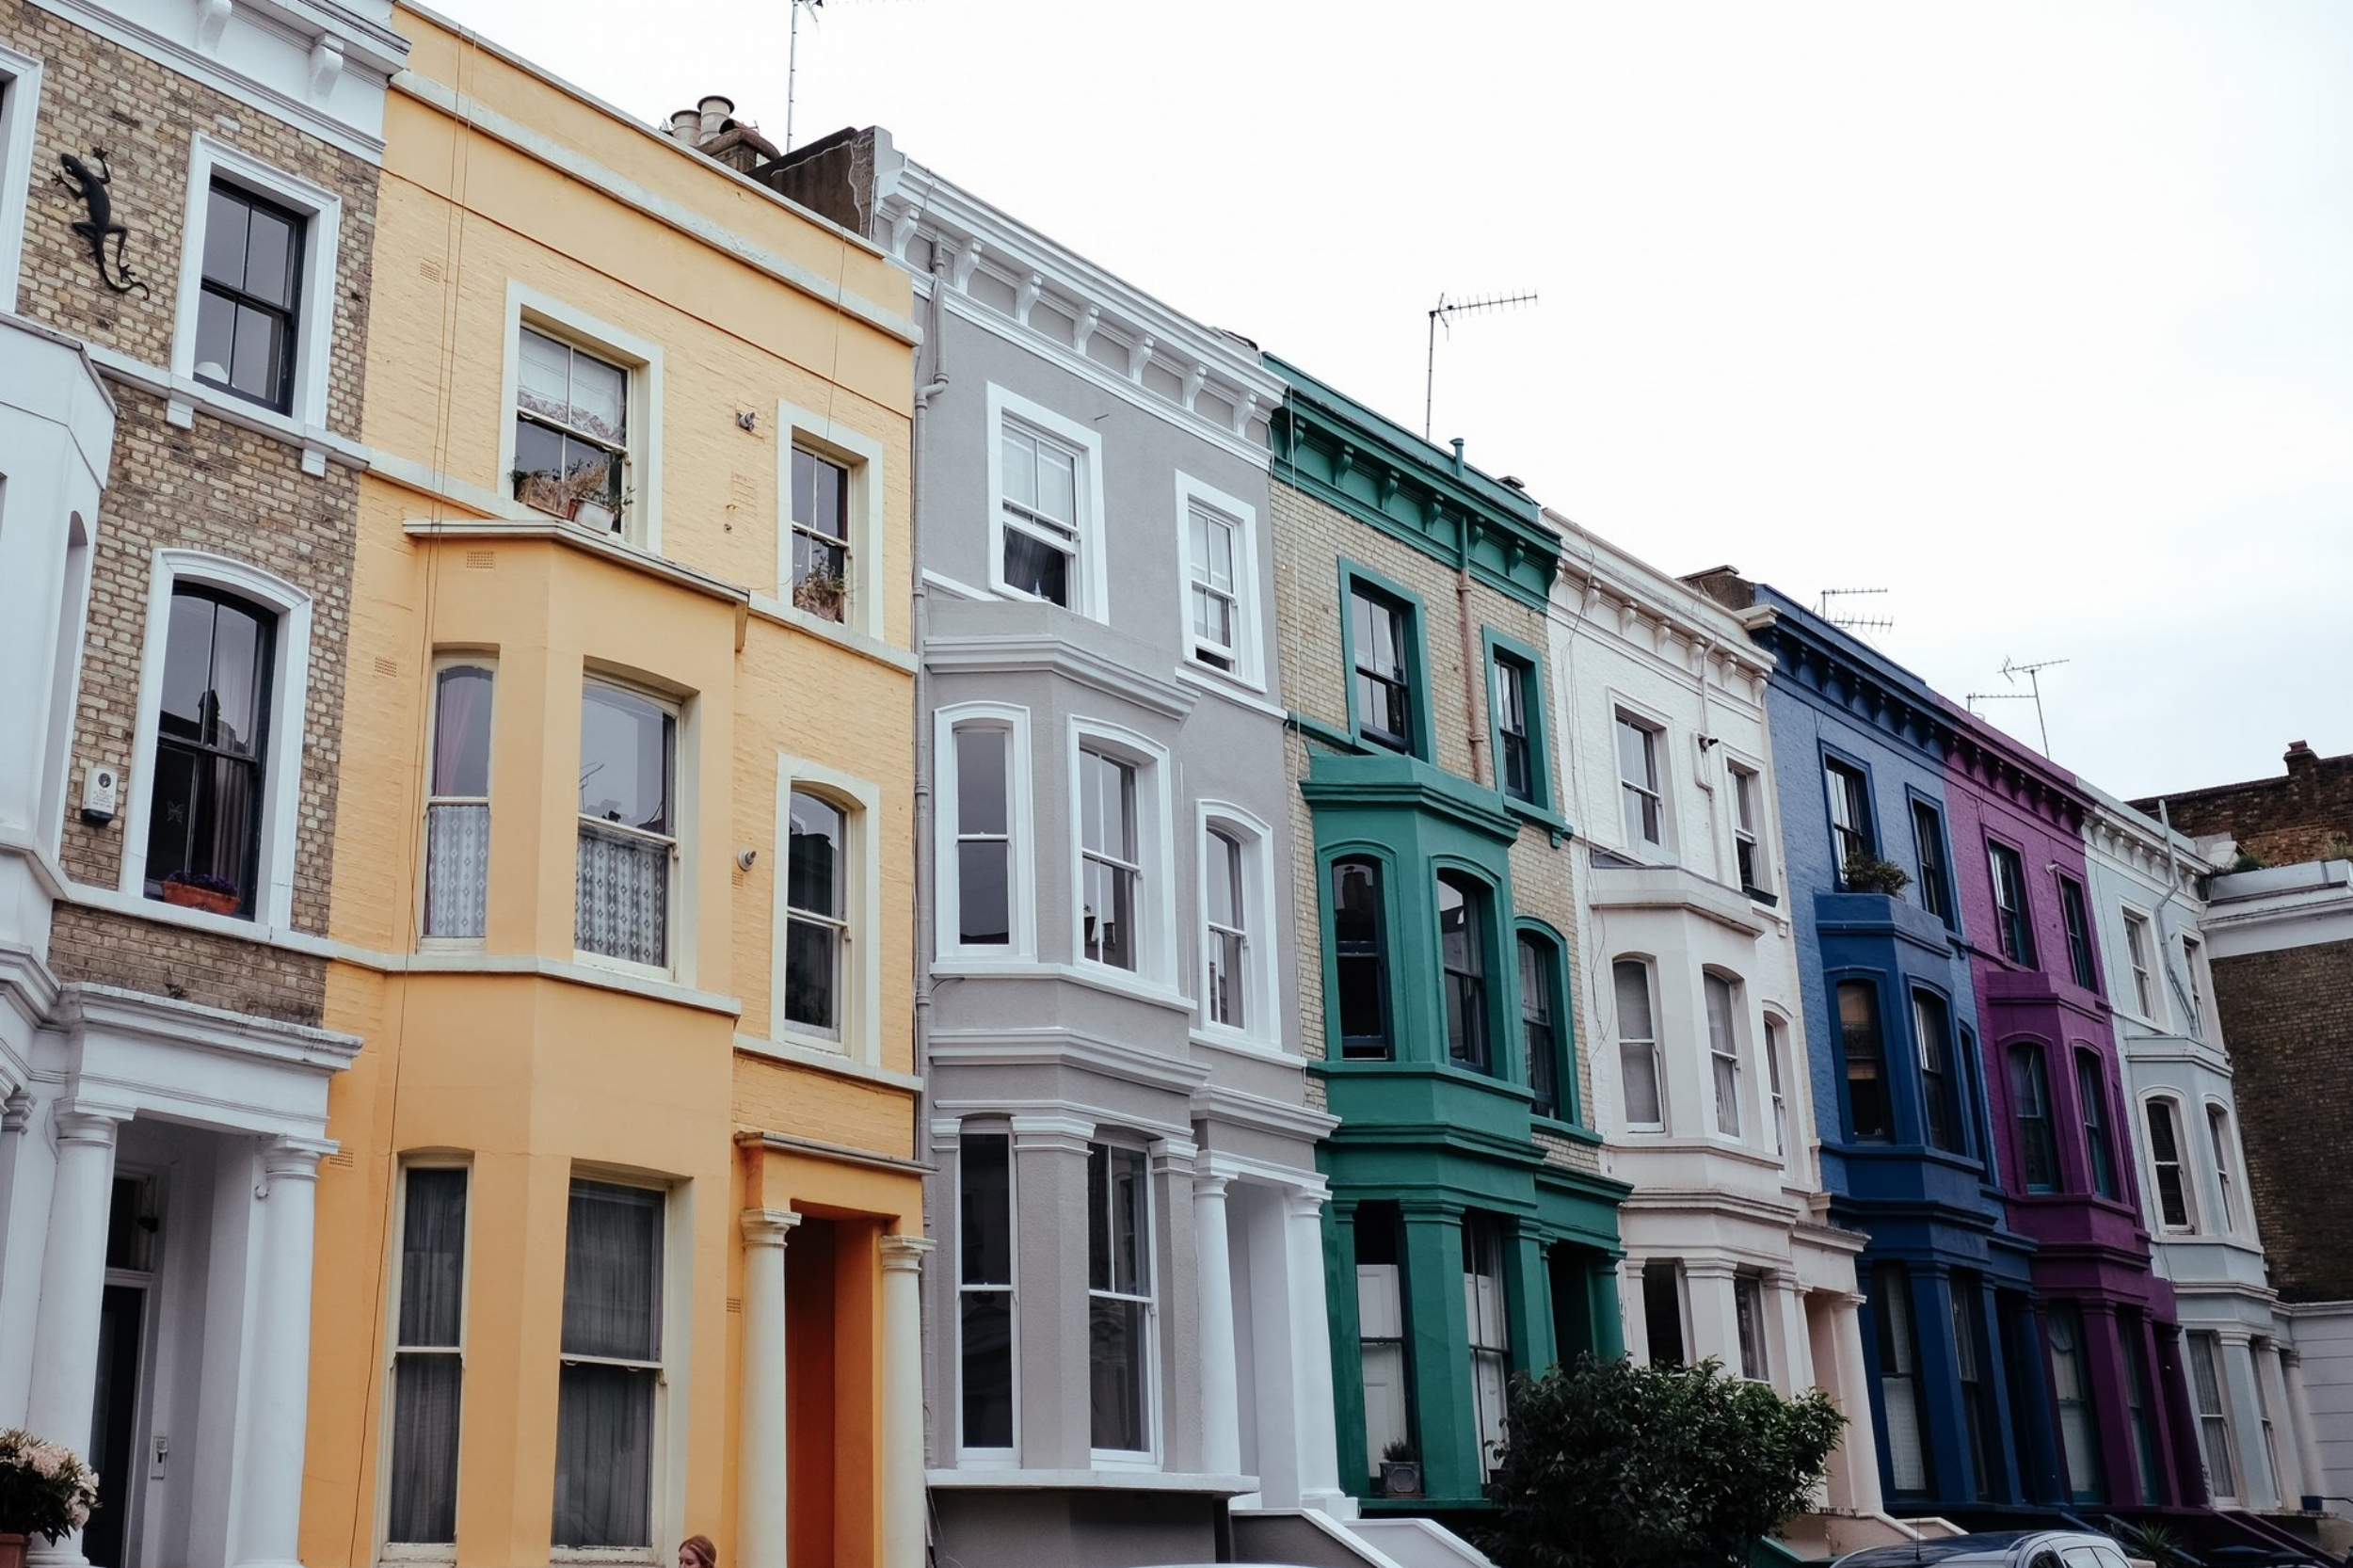 Day 14 London - Notting Hill > Portobello Road Market> Abbey Road Studios > Oxford Street